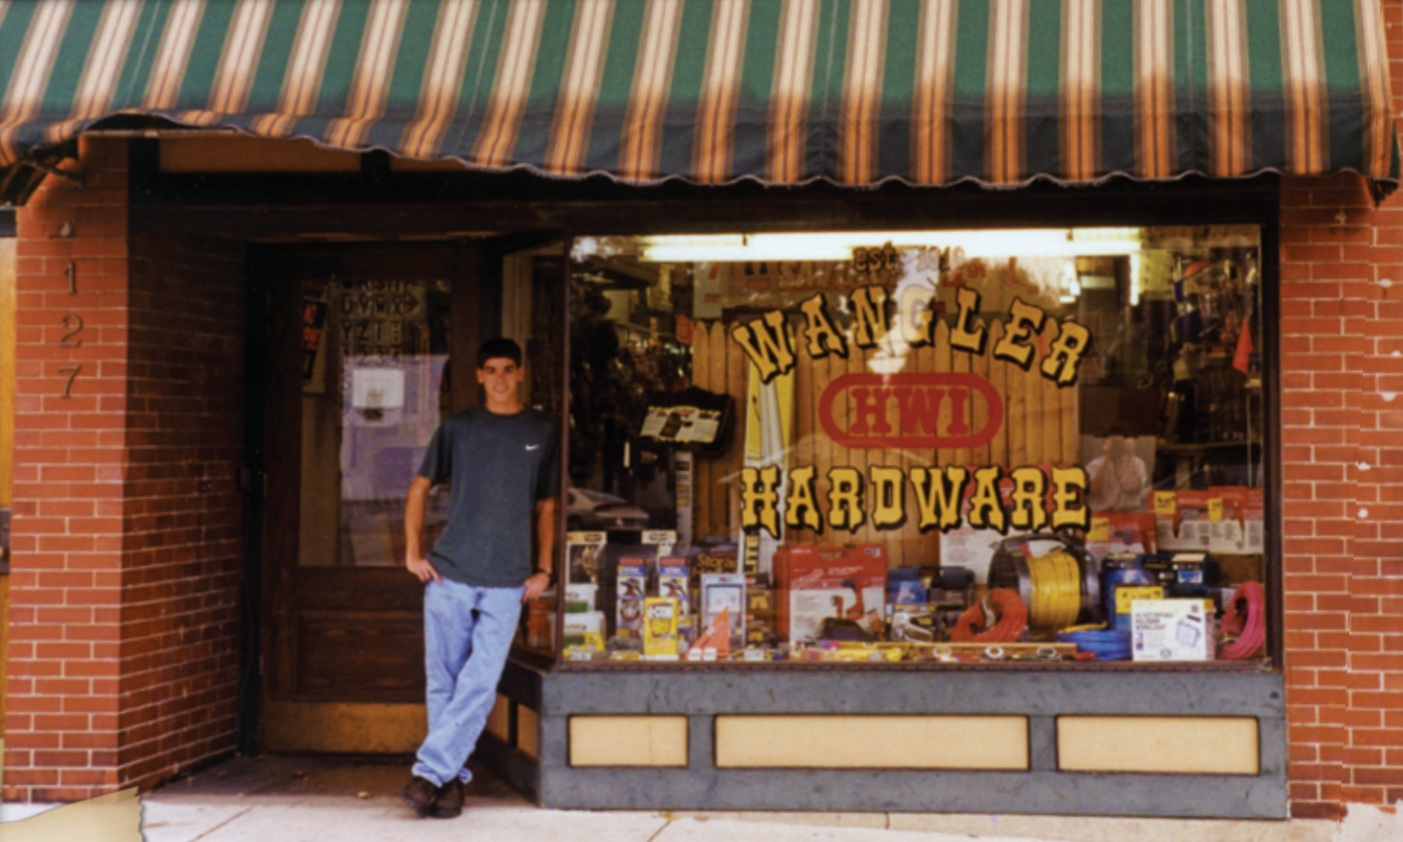 1997 - Location at 127 N Wayne Street. This photo shows a 16-year- old Matt Minor, son of Mike & PJ (Wangler) Minor, who will go on to take over the business.